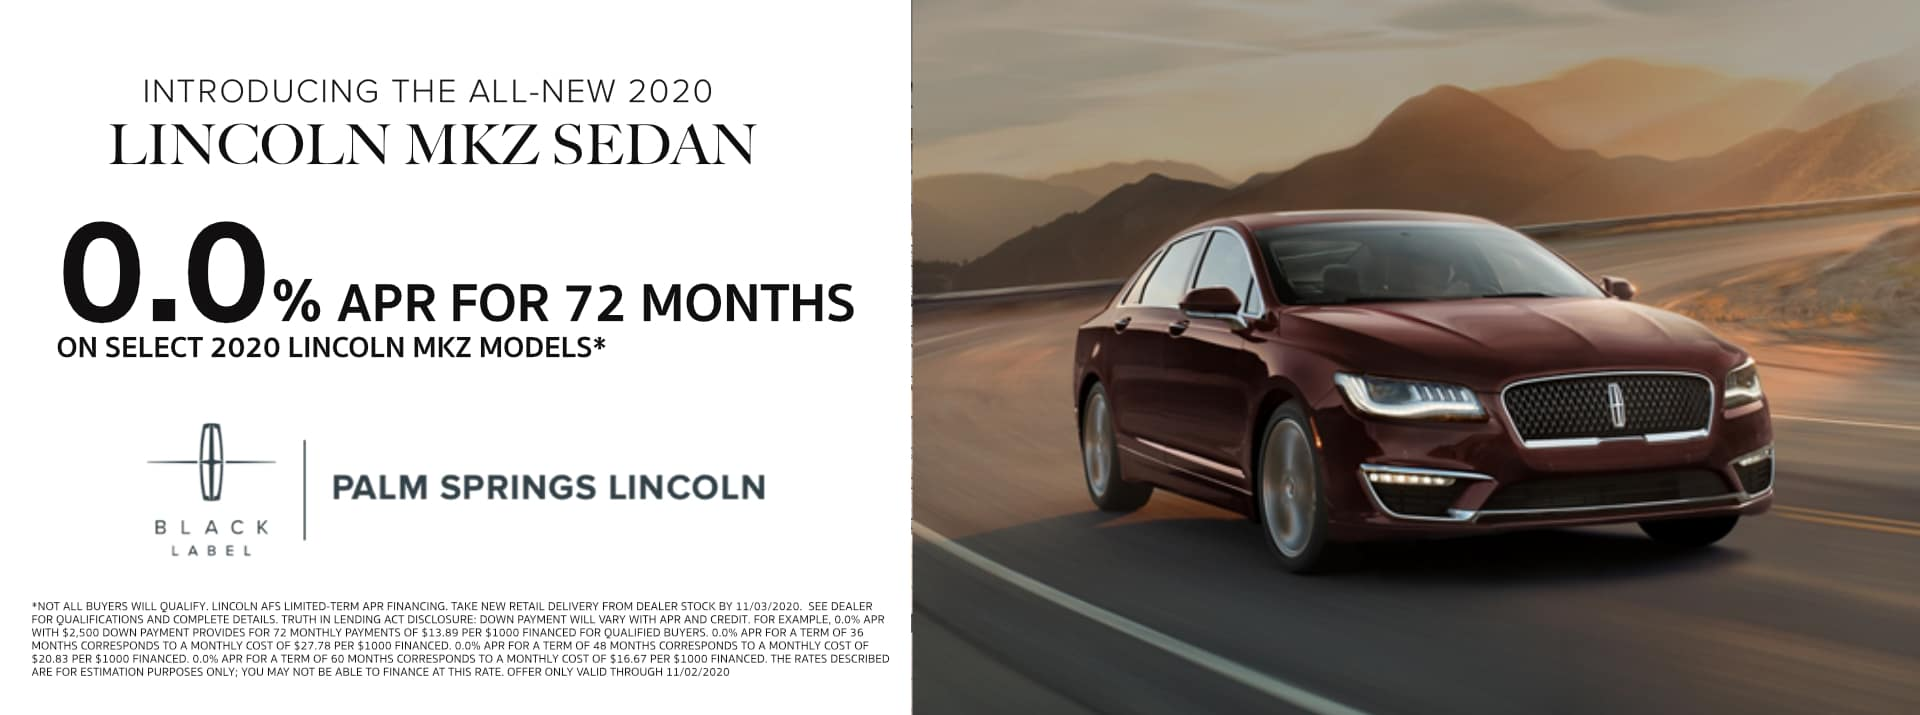 2020_Lincoln_MKZ_October_2020_1920x715